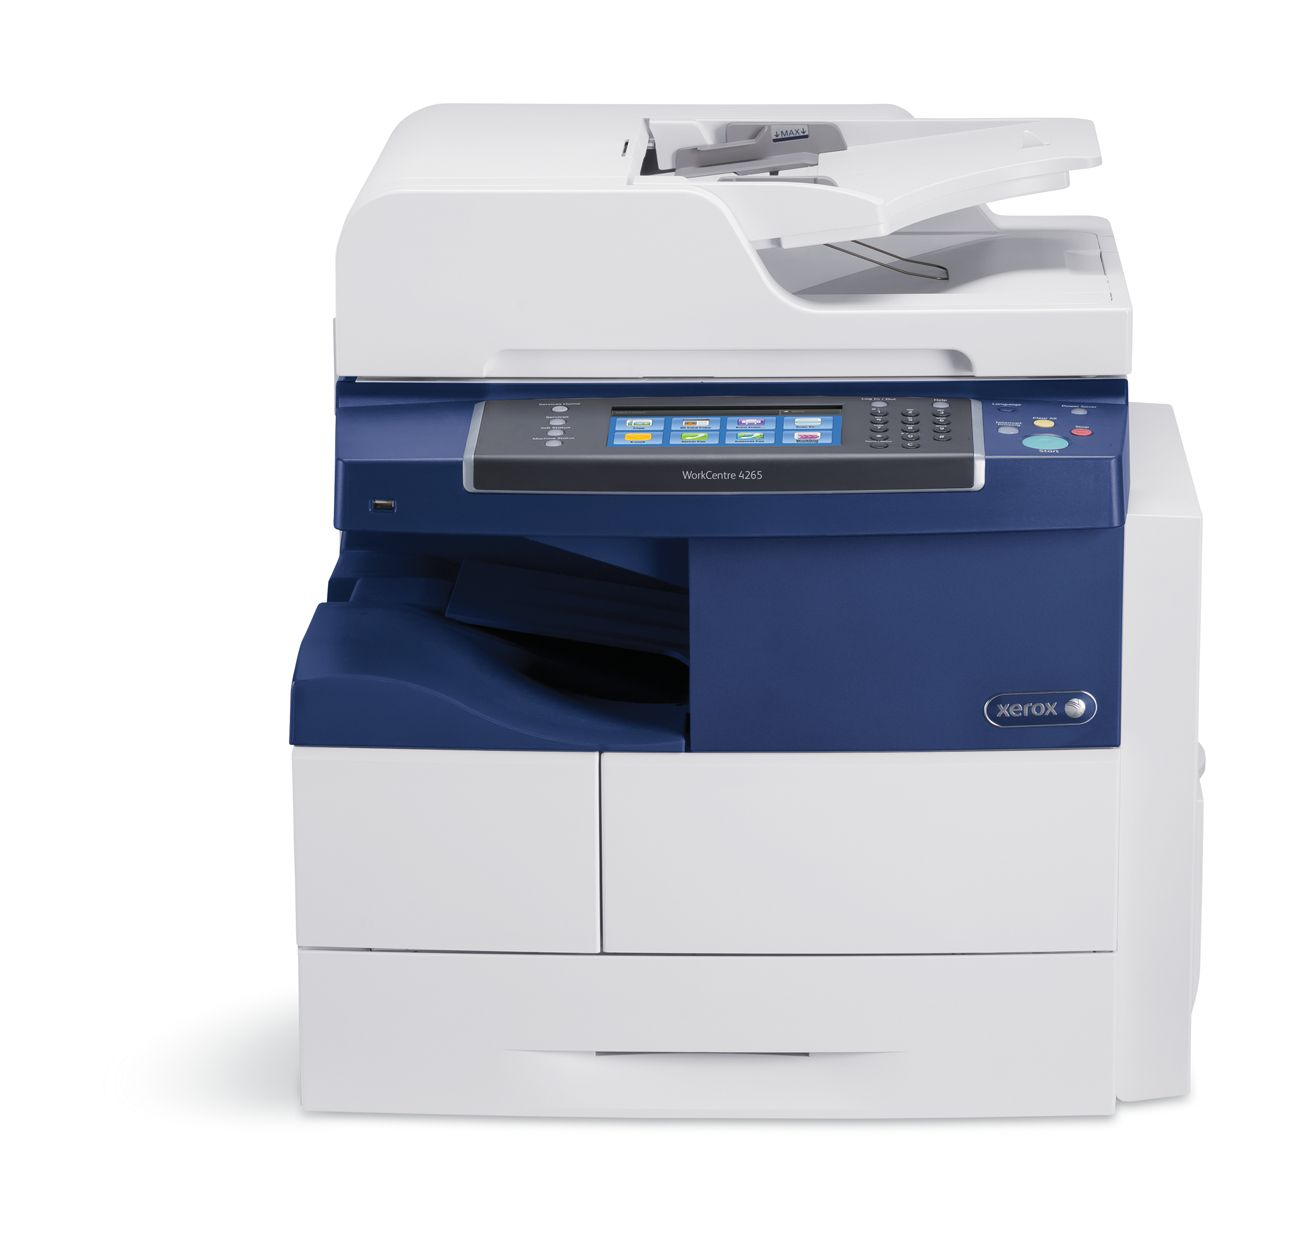 Fast And Cost Effective Xerox Workcentre 4265 Printer Scanner